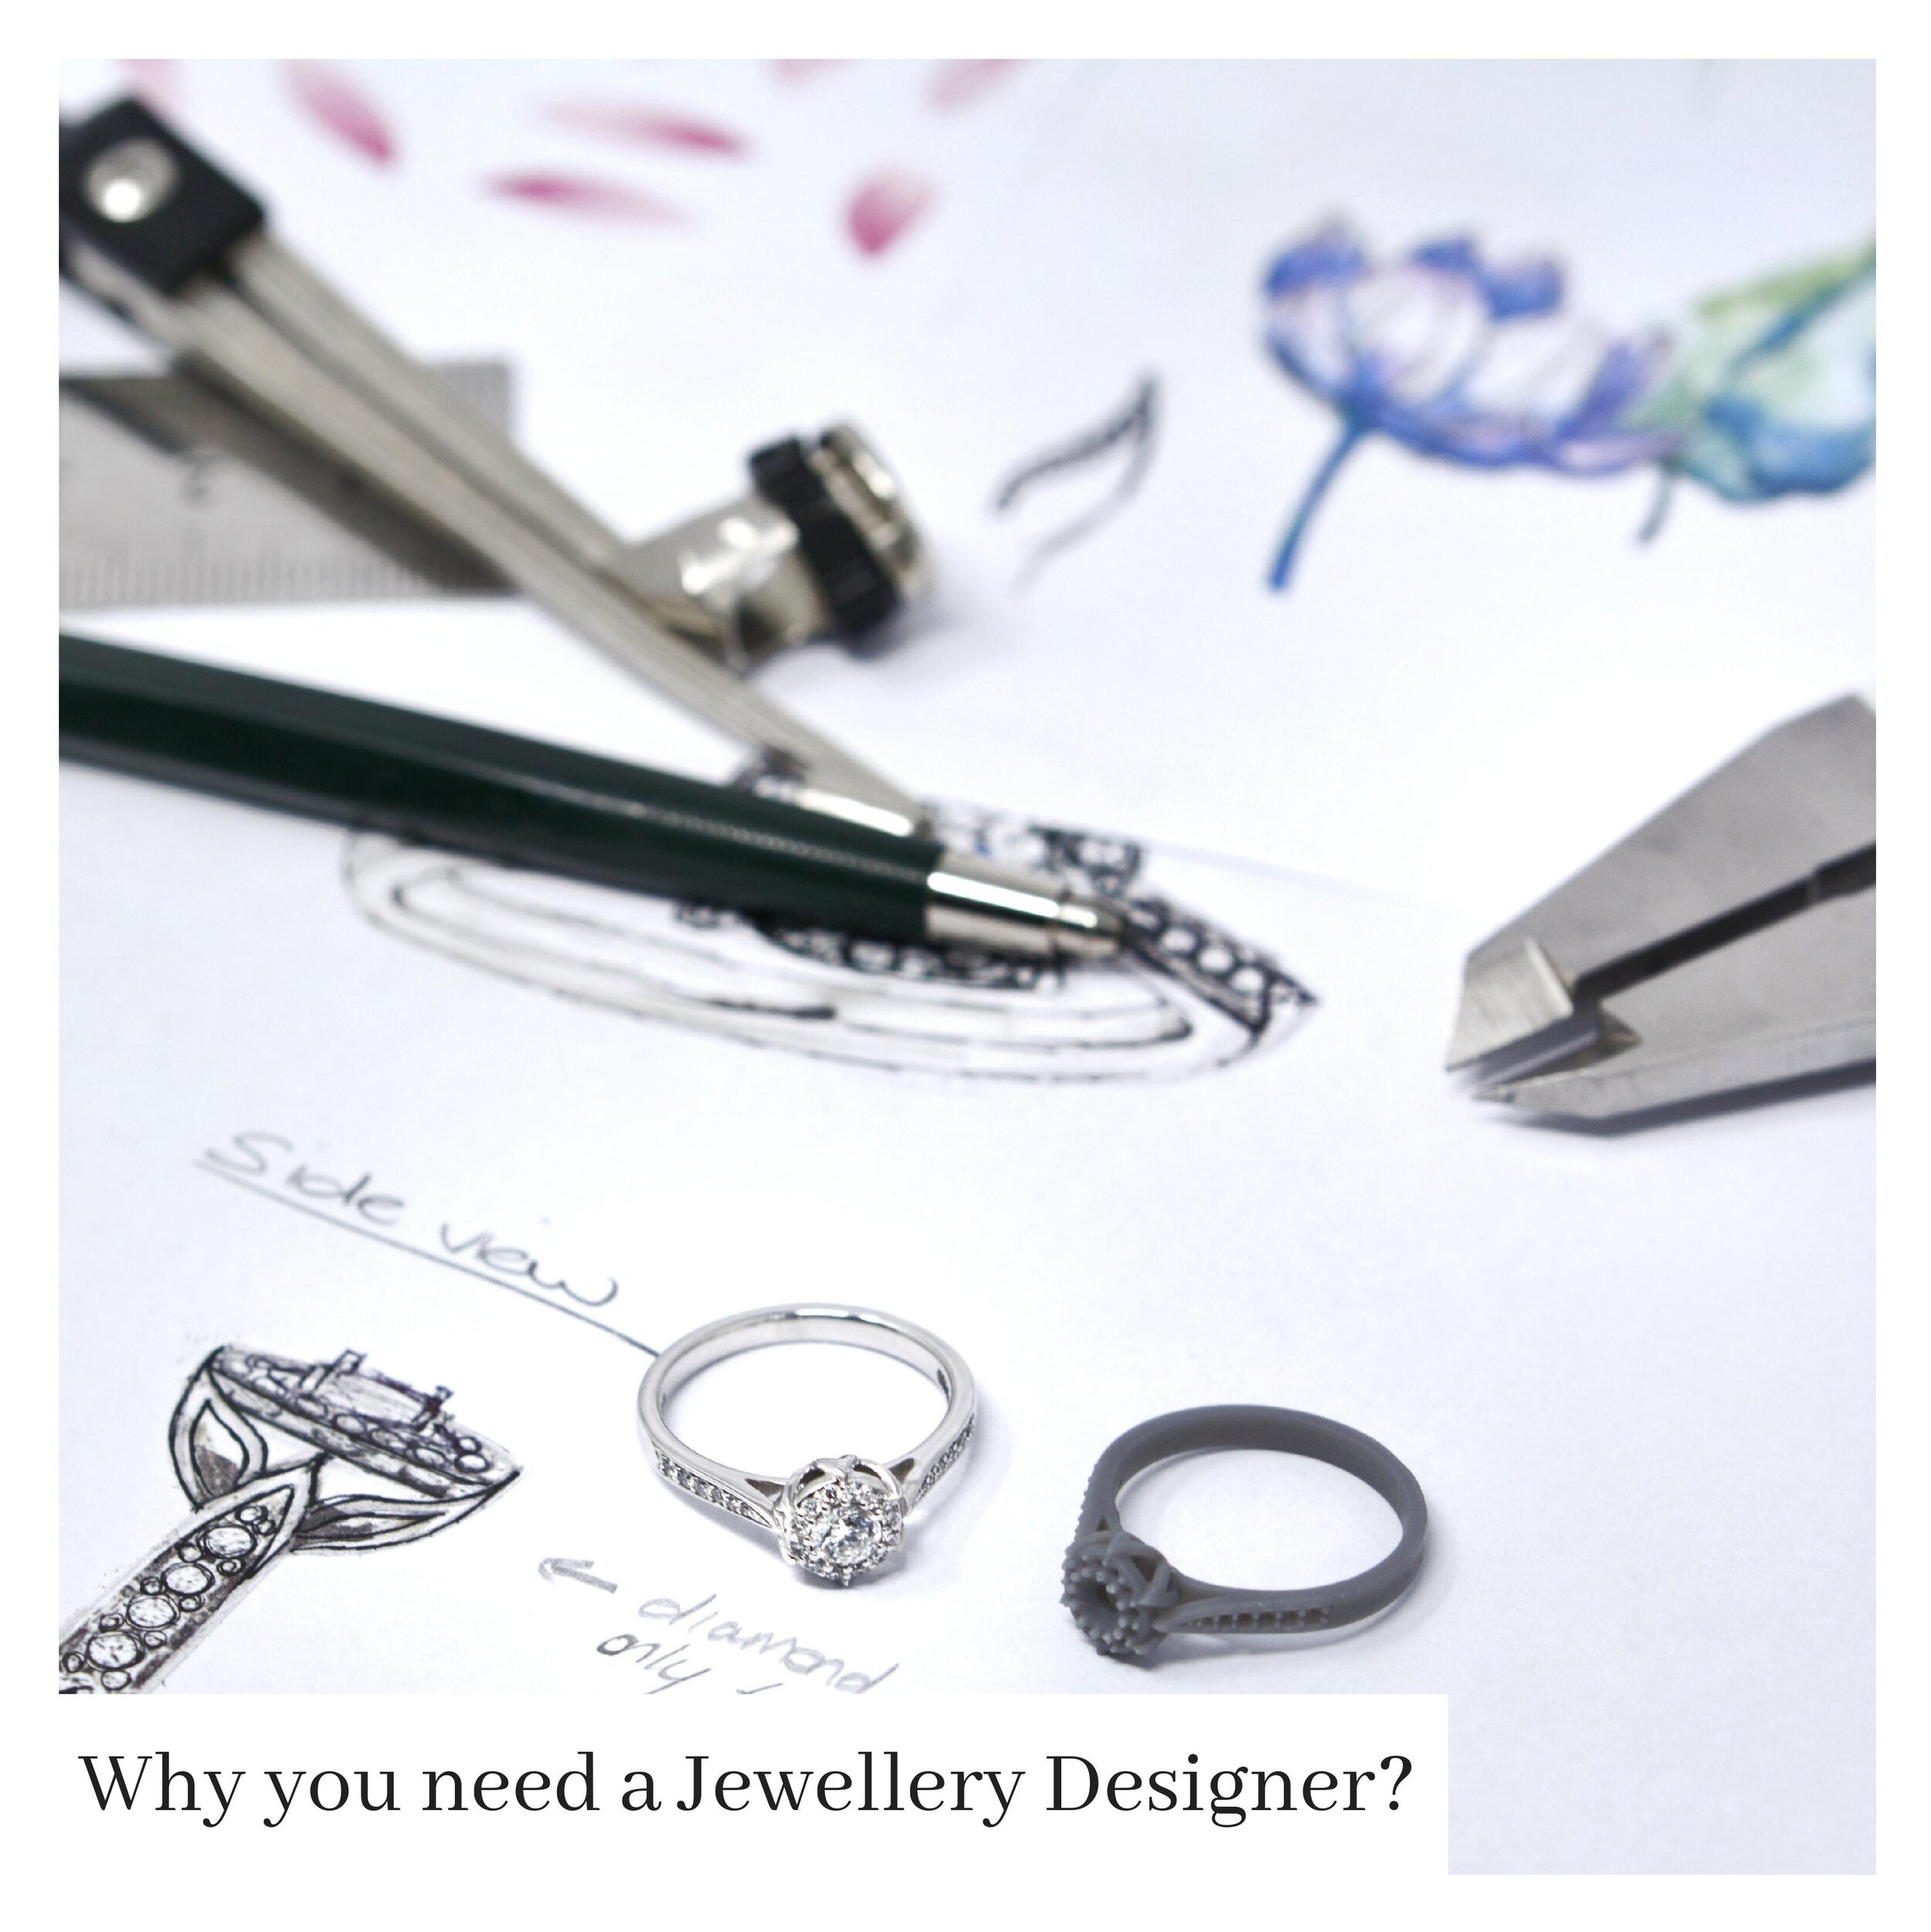 Why you need a jewellery designer?